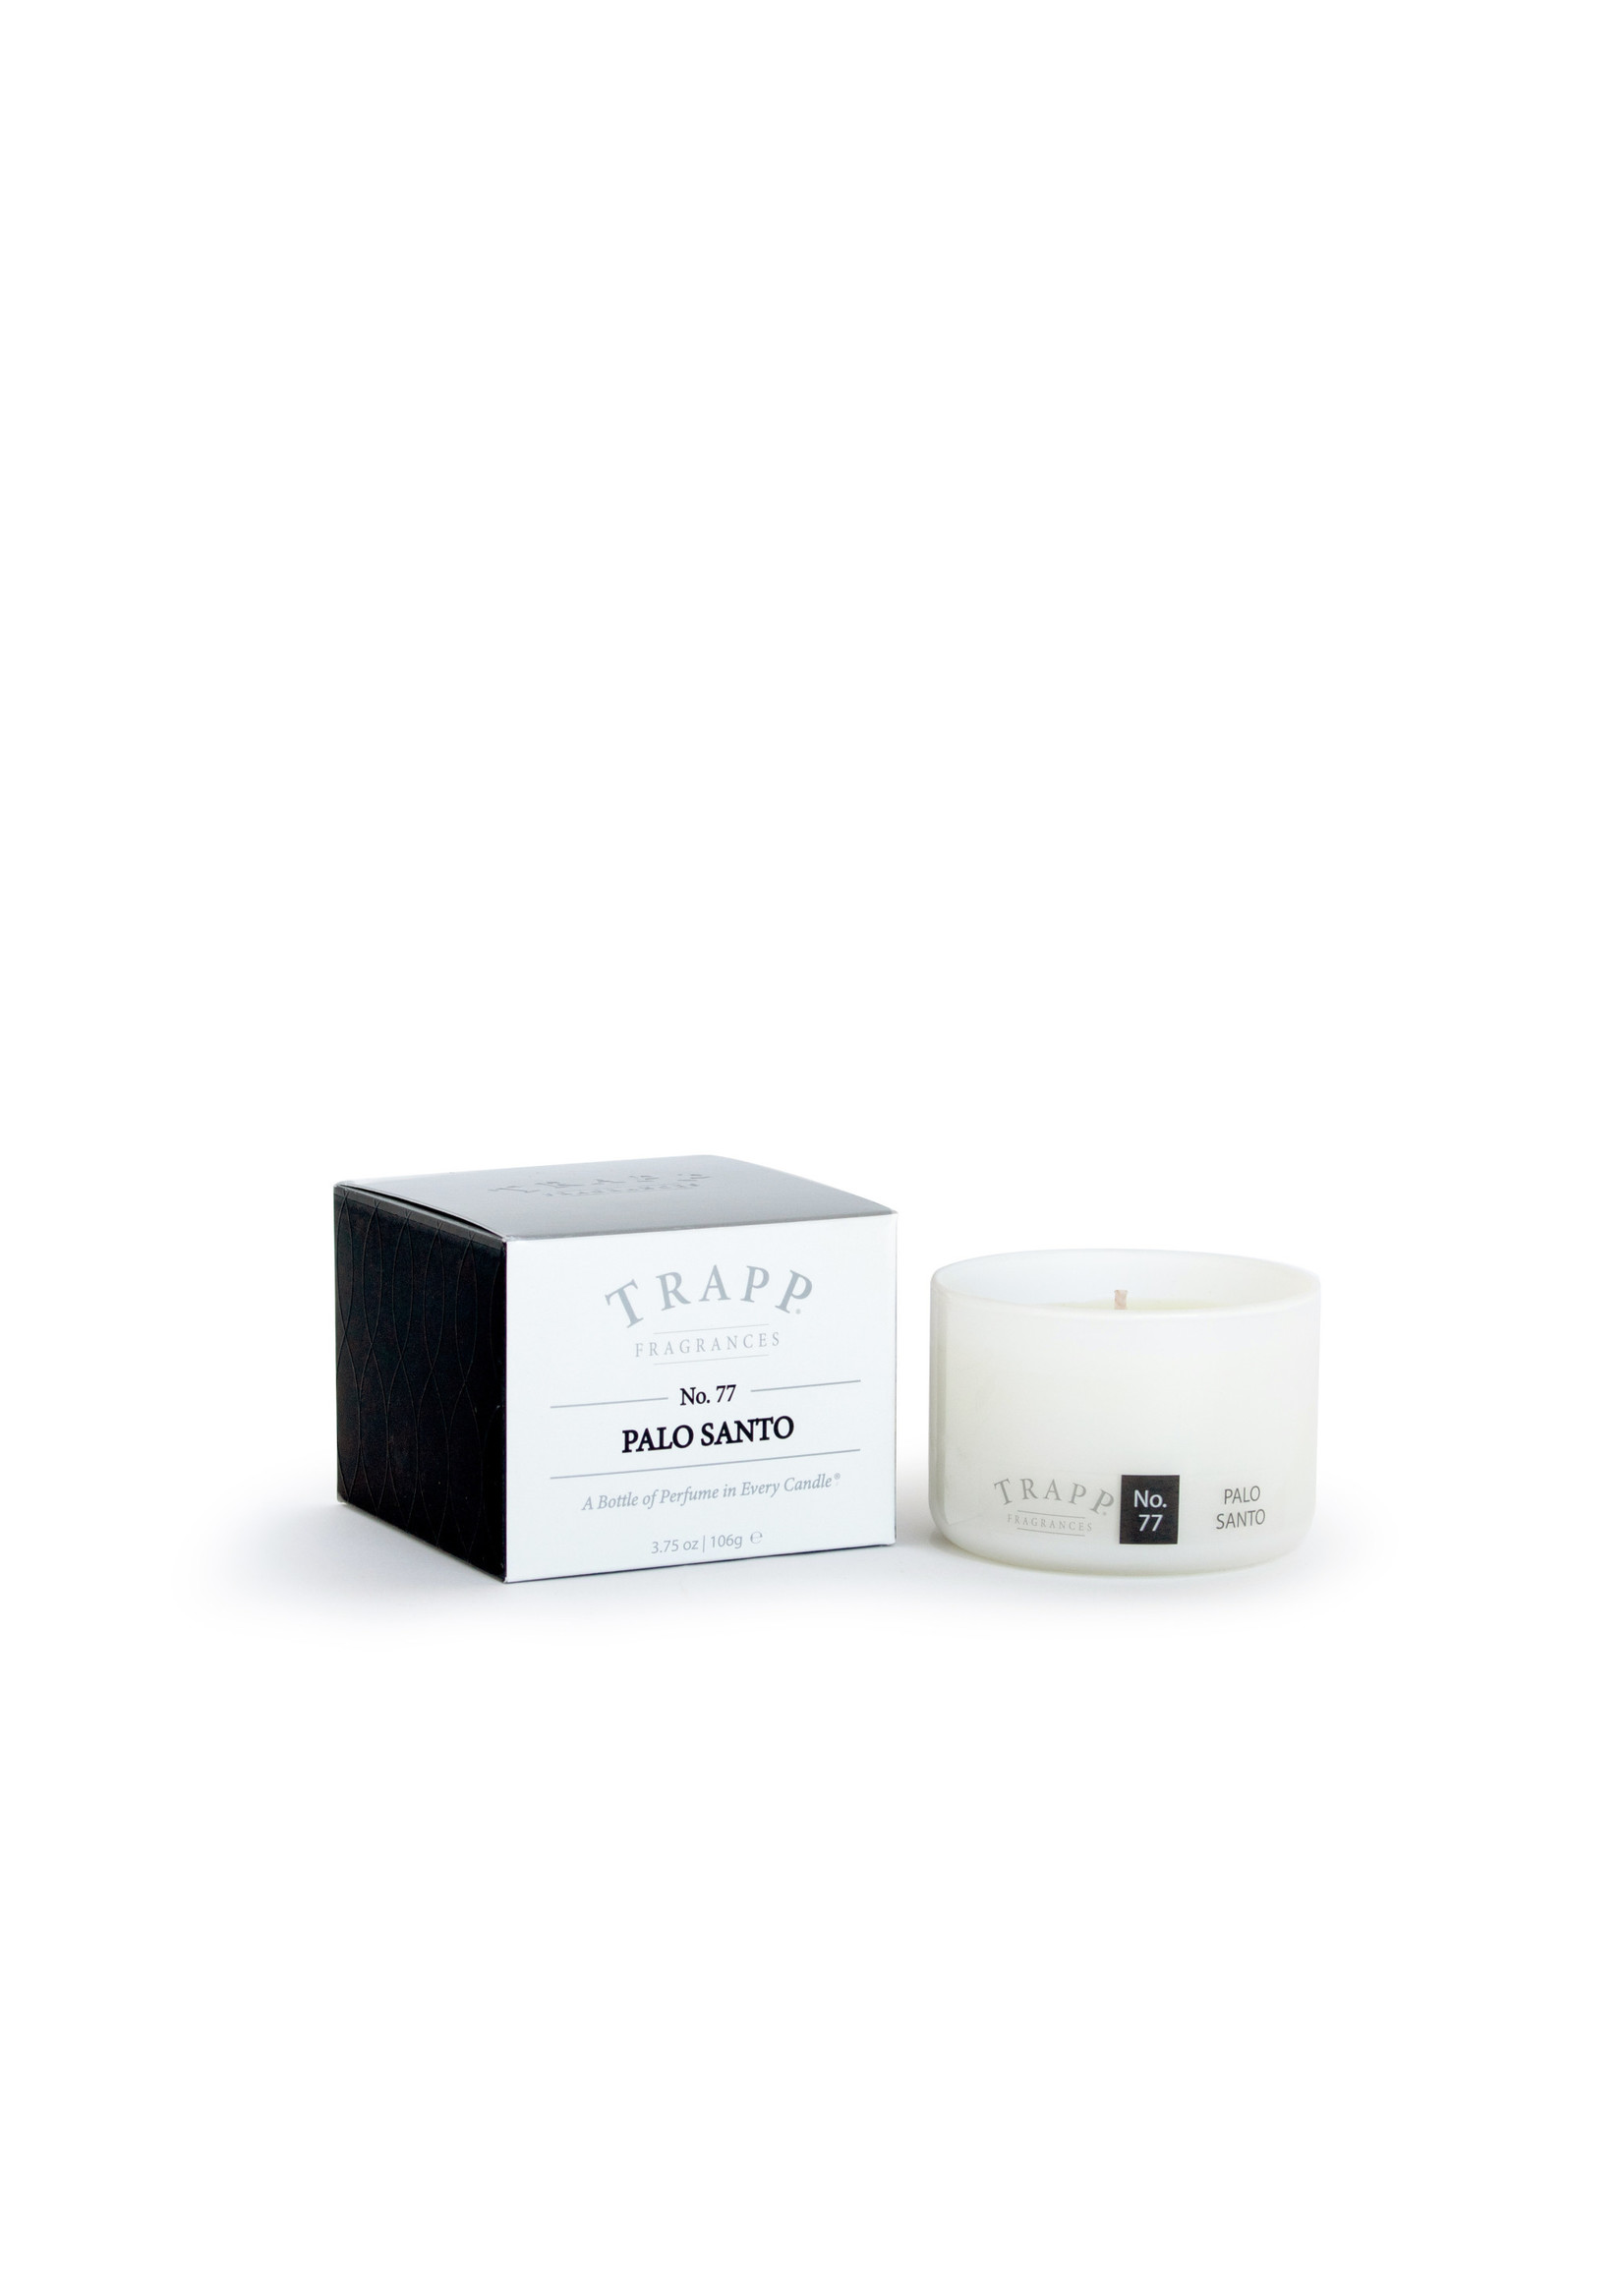 Trapp Candles Ambiance Collection - No. 77 Palo Santo - 3.75 oz. Poured Candle